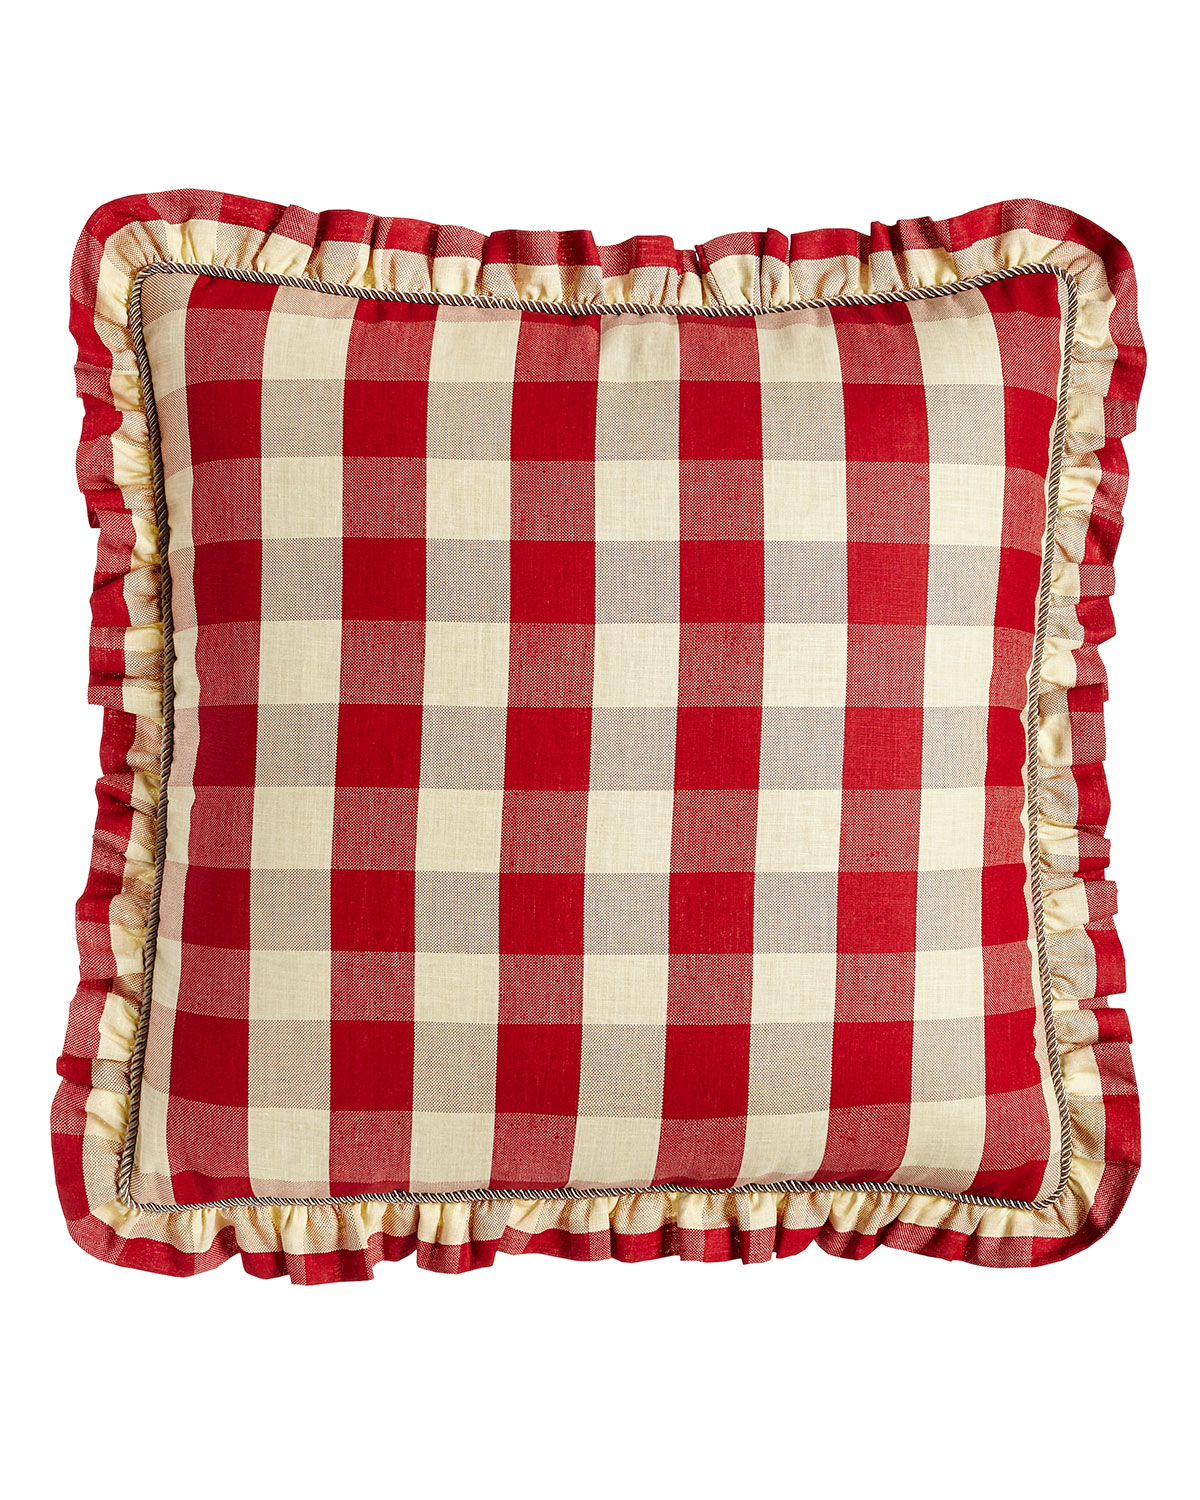 Sherry Kline Home French Country Bedding Houndstooth Quilt Set